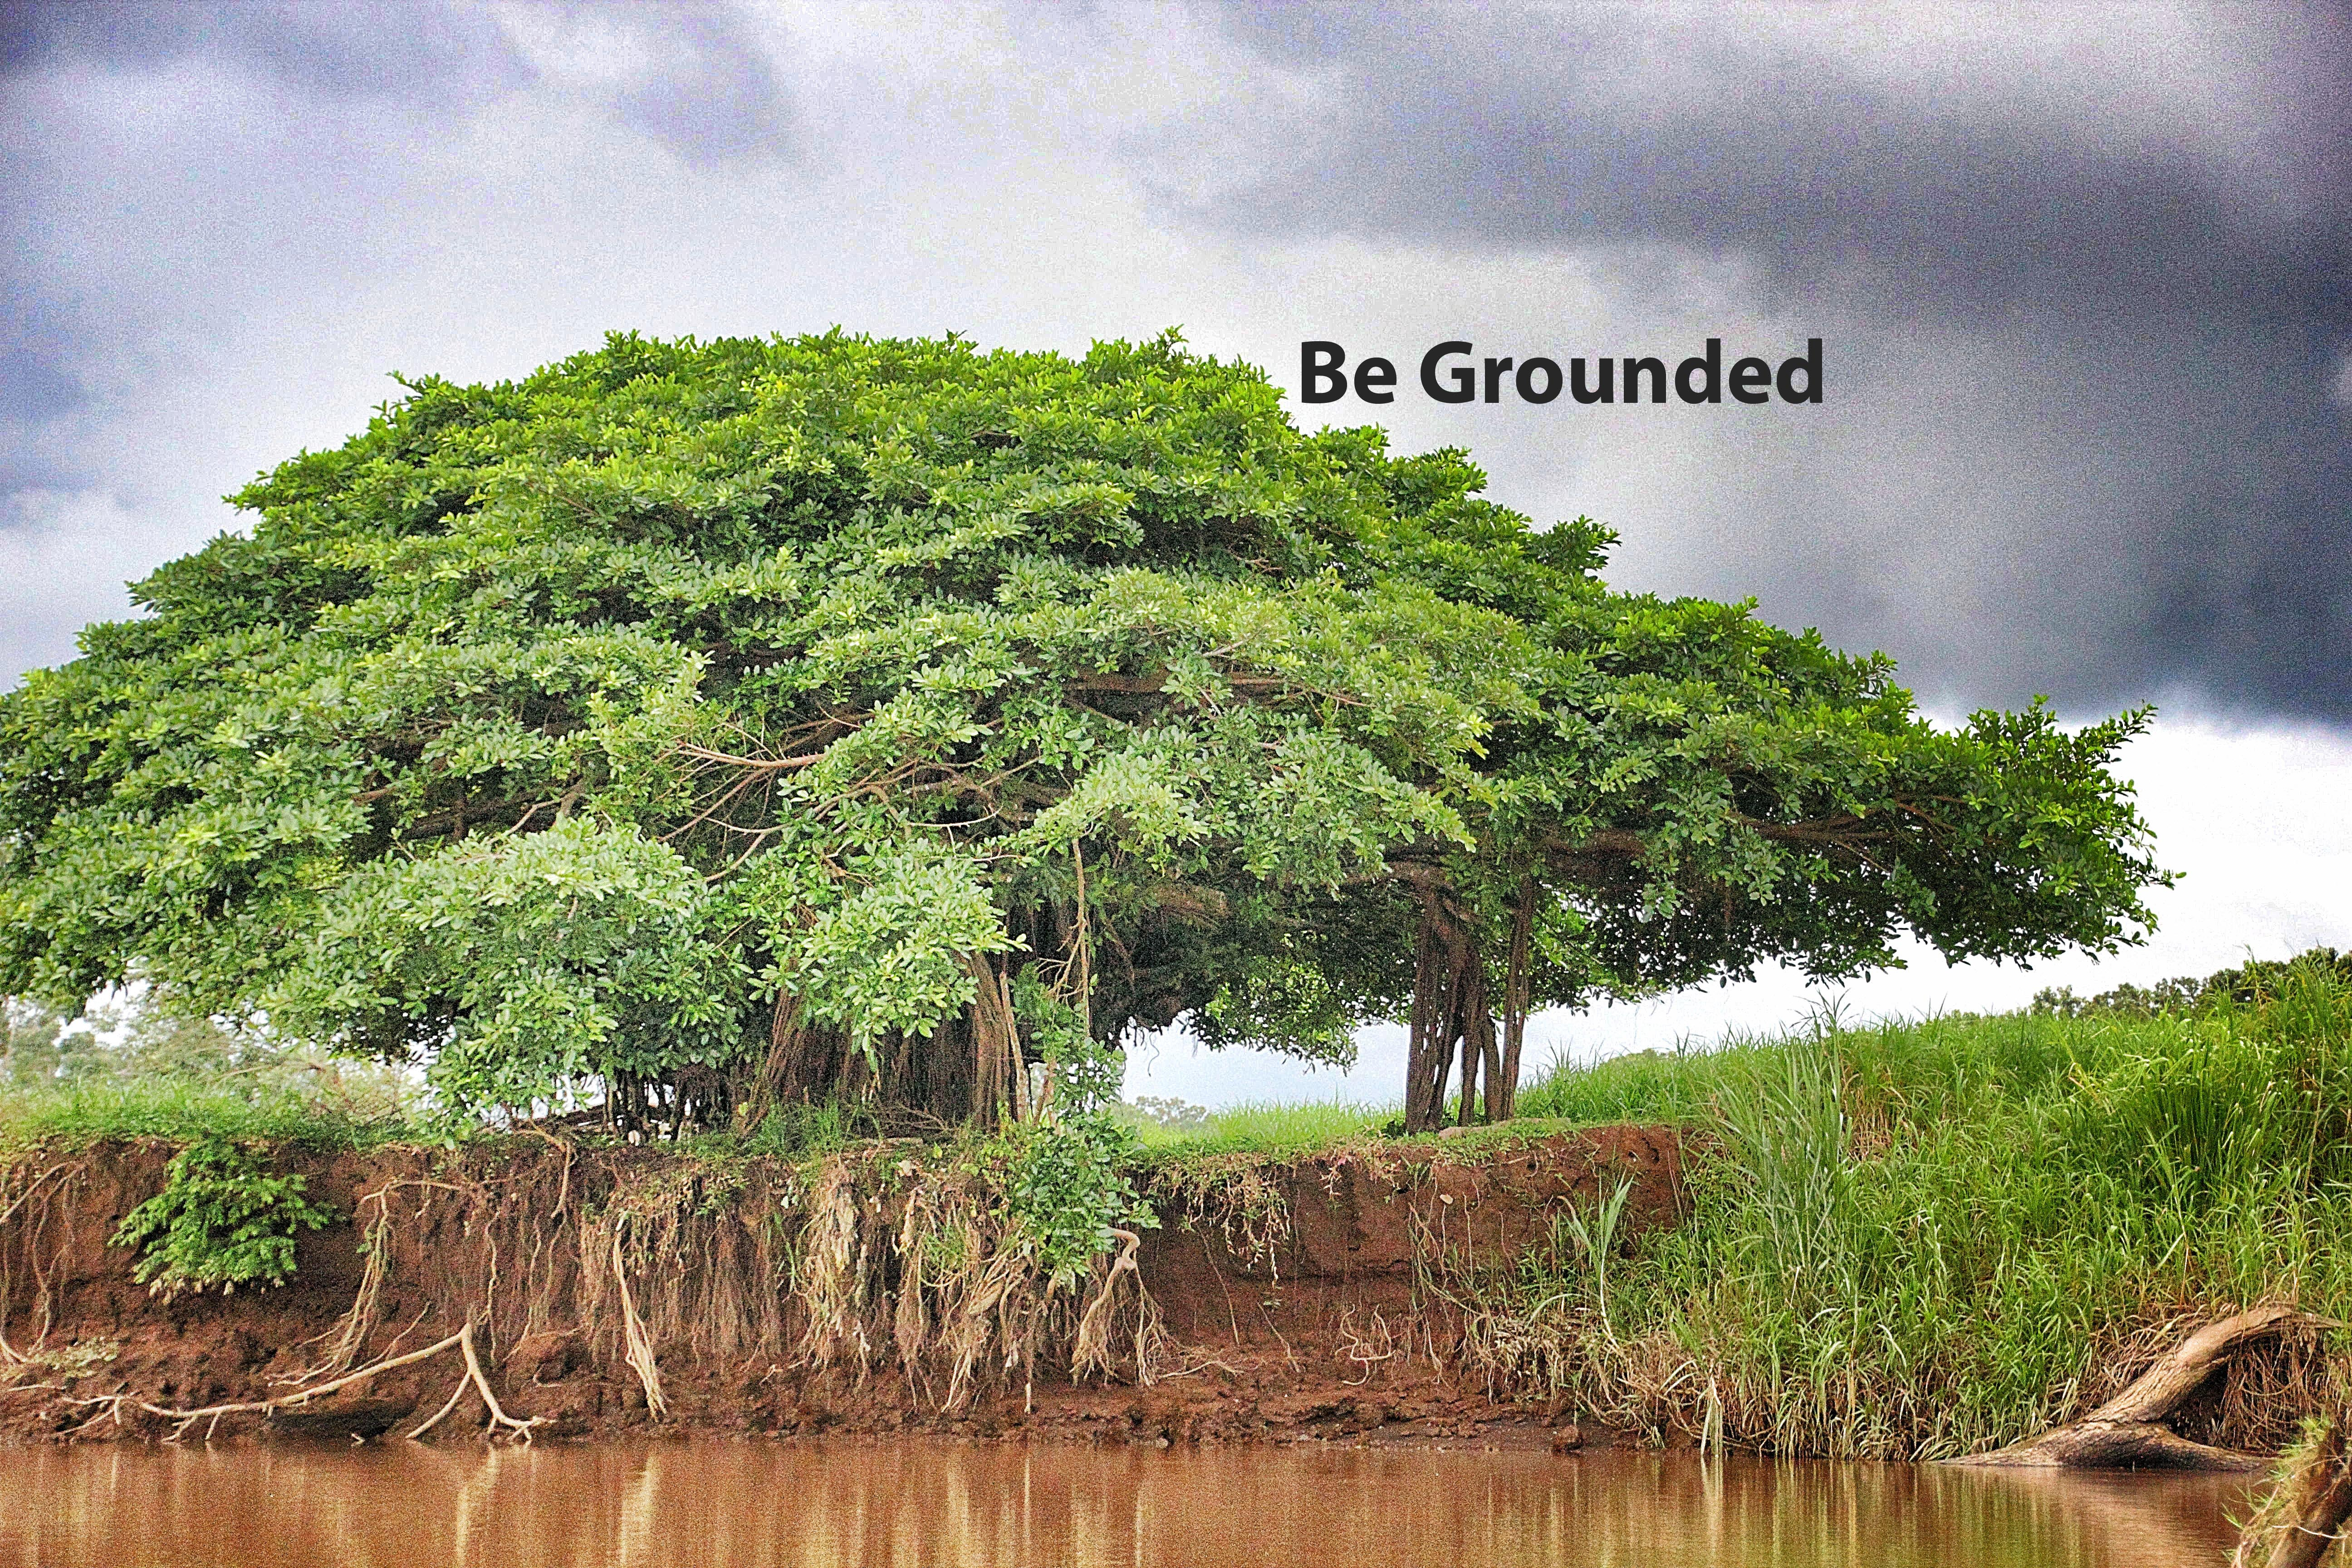 Be Grounded by Michele Molitor